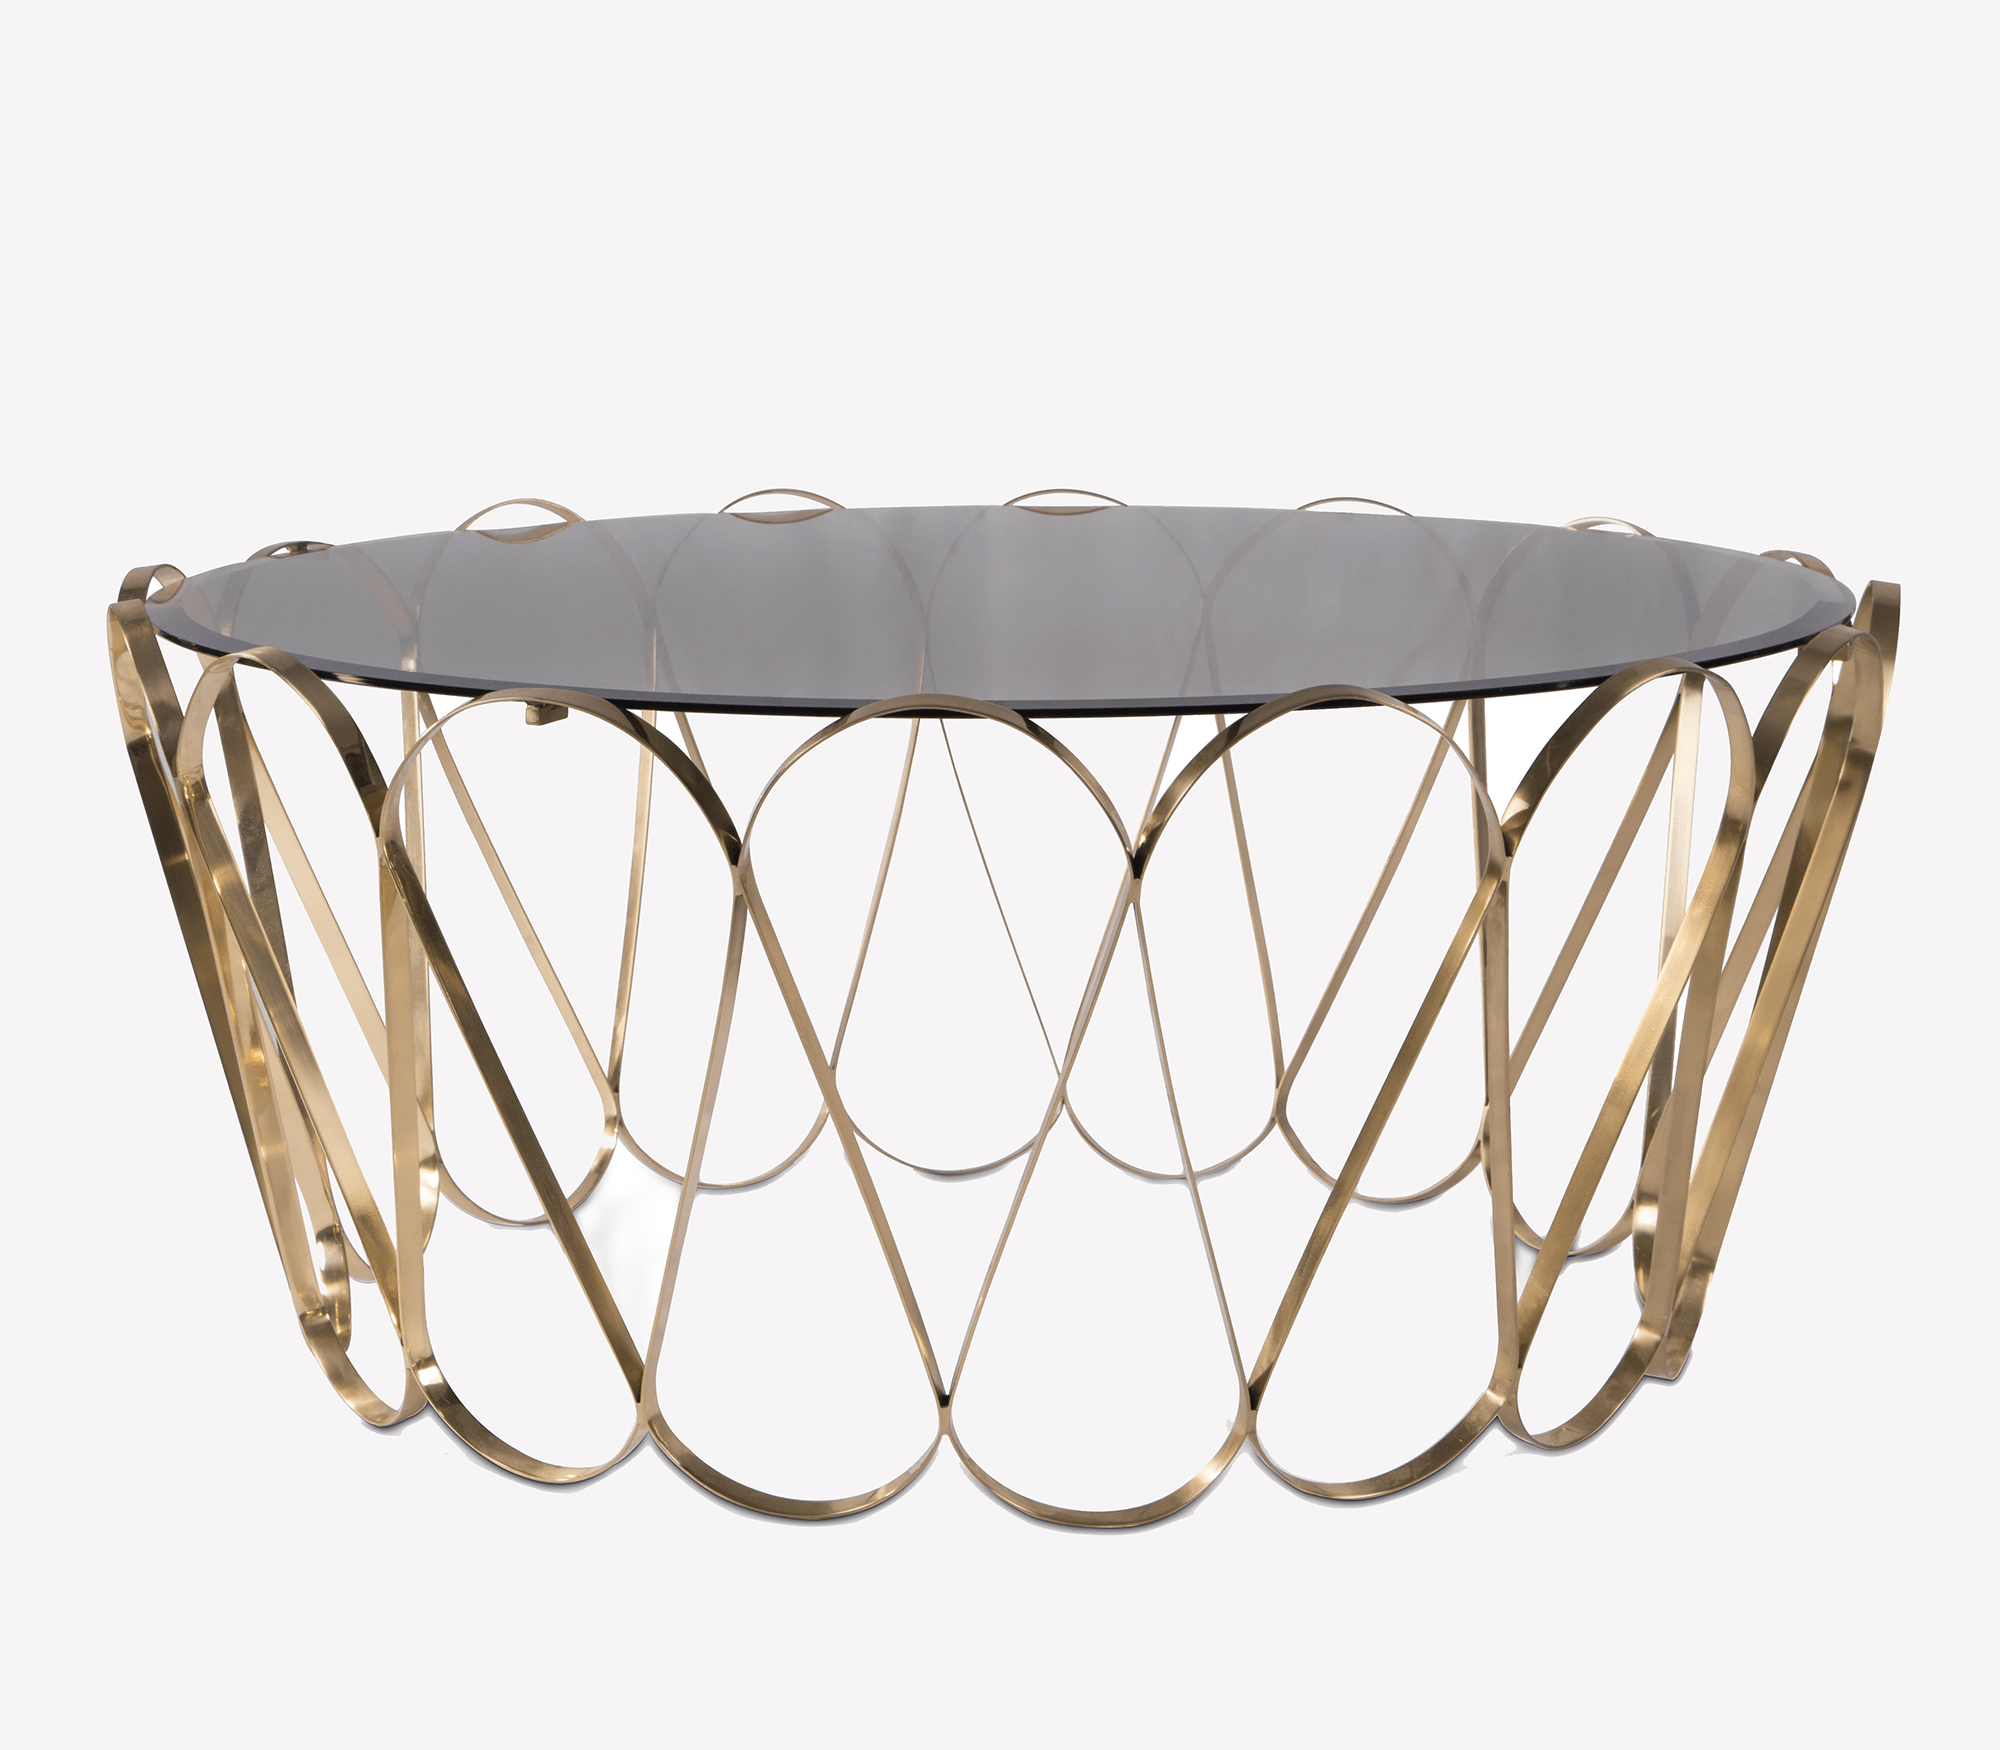 Aquarius Gold Center Table by Boca do Lobo